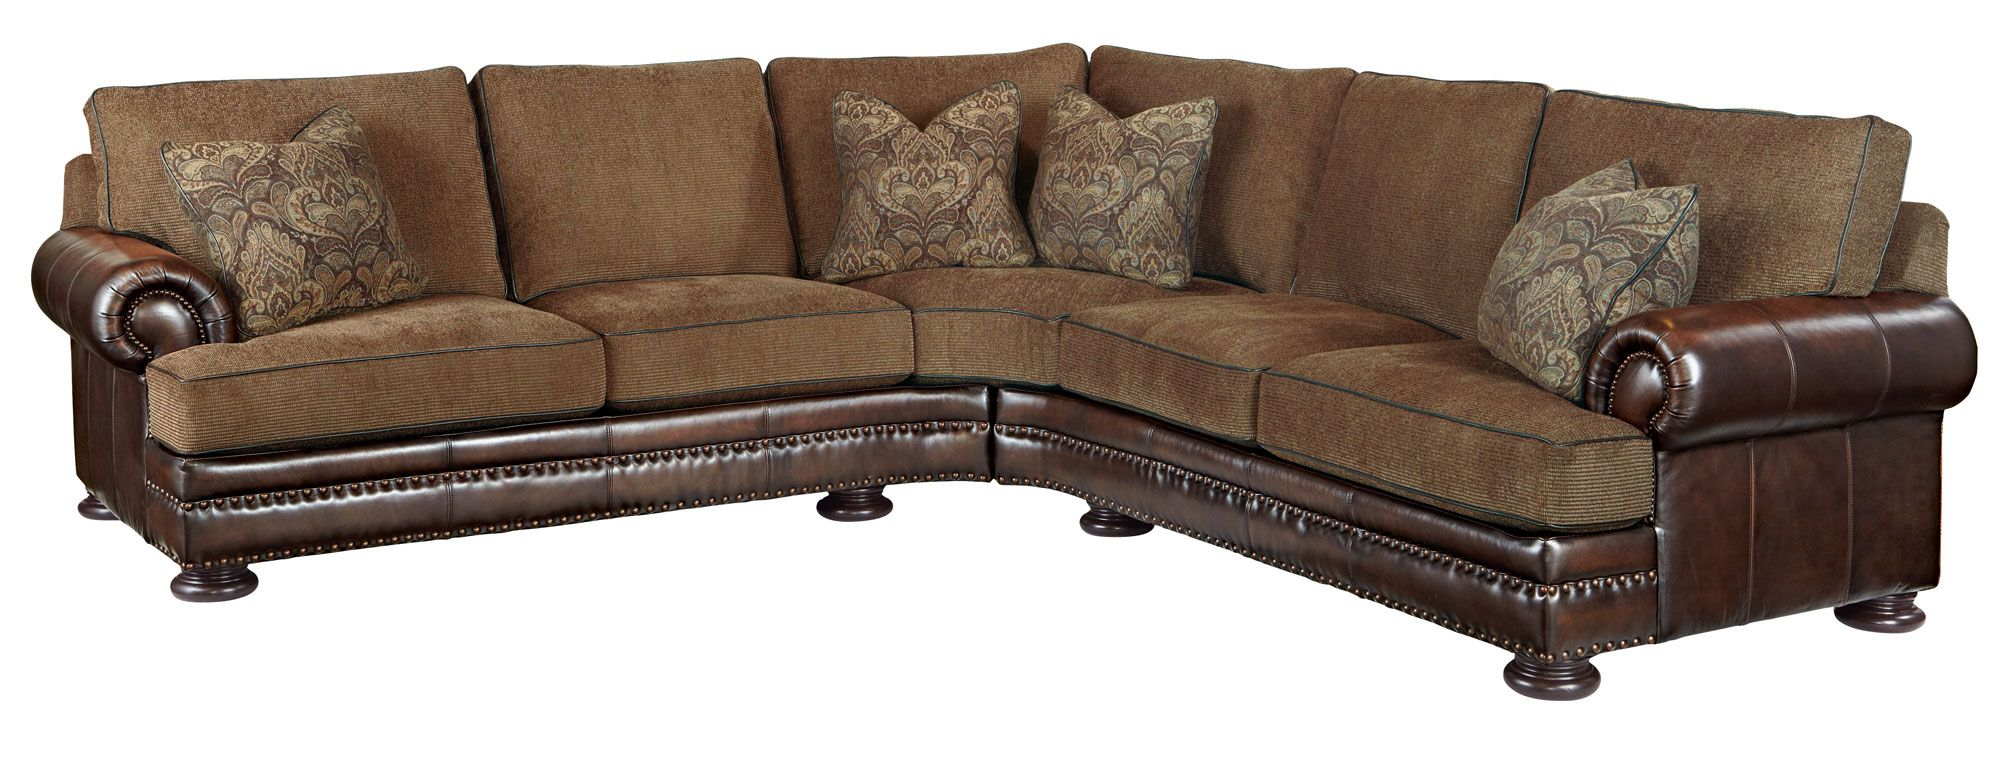 Traditional Sectional L Shaped Sofa Design Ideas for Living Room Furniture with Sweet Brown Leather Sofa  sc 1 st  Pinterest : traditional sectionals - Sectionals, Sofas & Couches